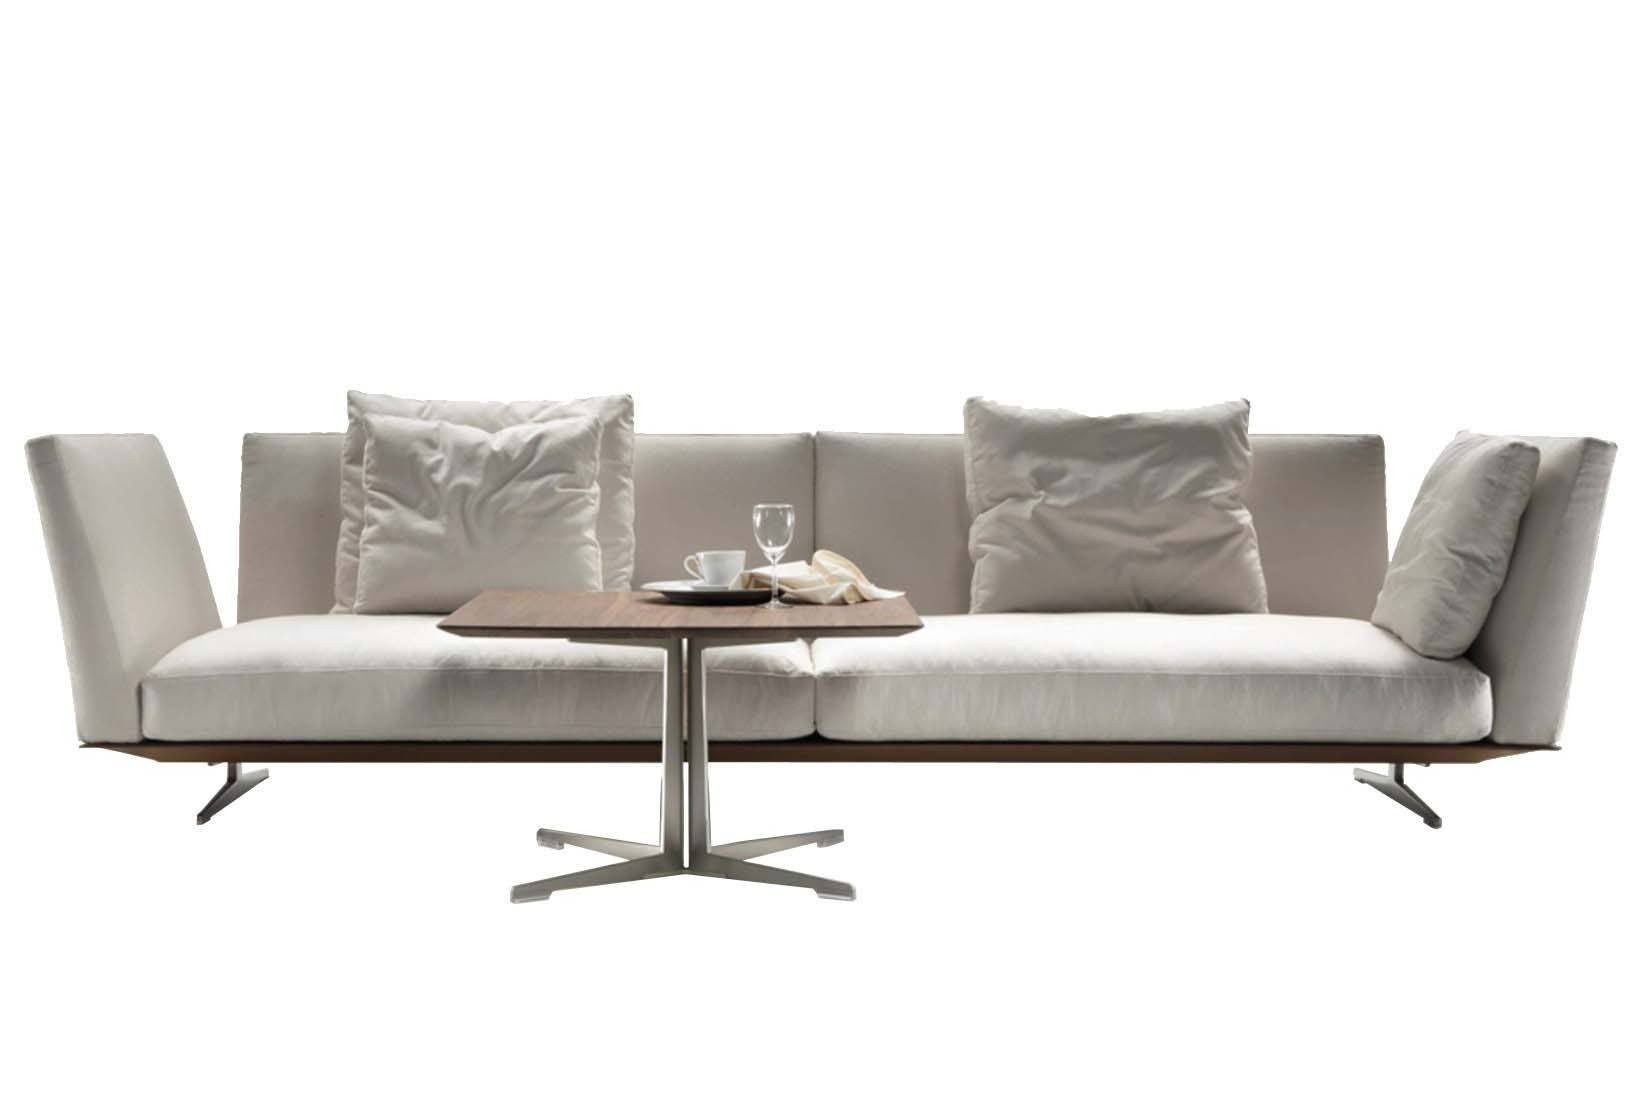 Antonio Citterio City Sofa Flexform Evergreen Sofa